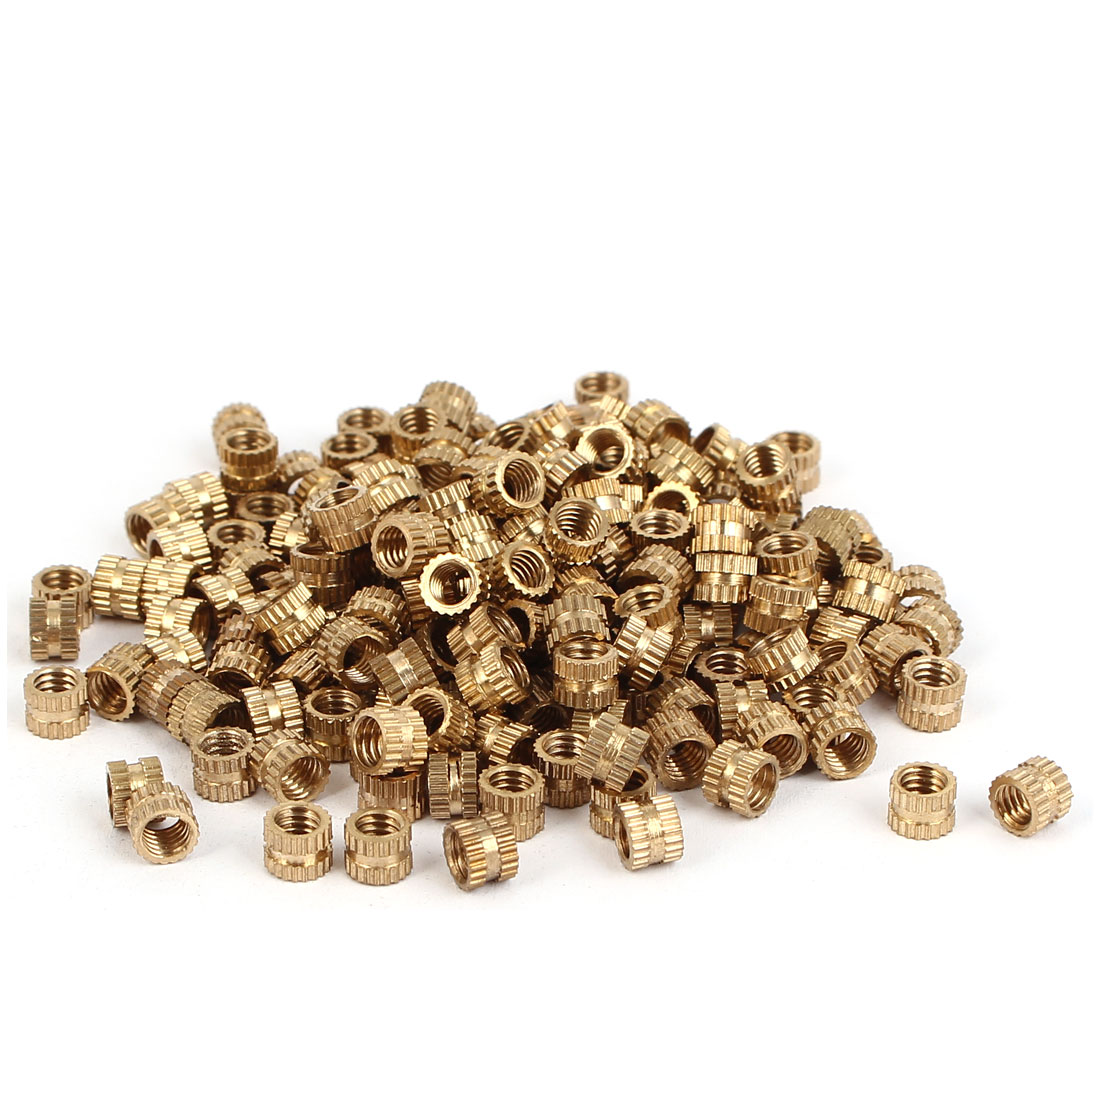 M4 x 4mm Female Thread Brass Knurled Threaded Insert Embedment Nuts 200PCS